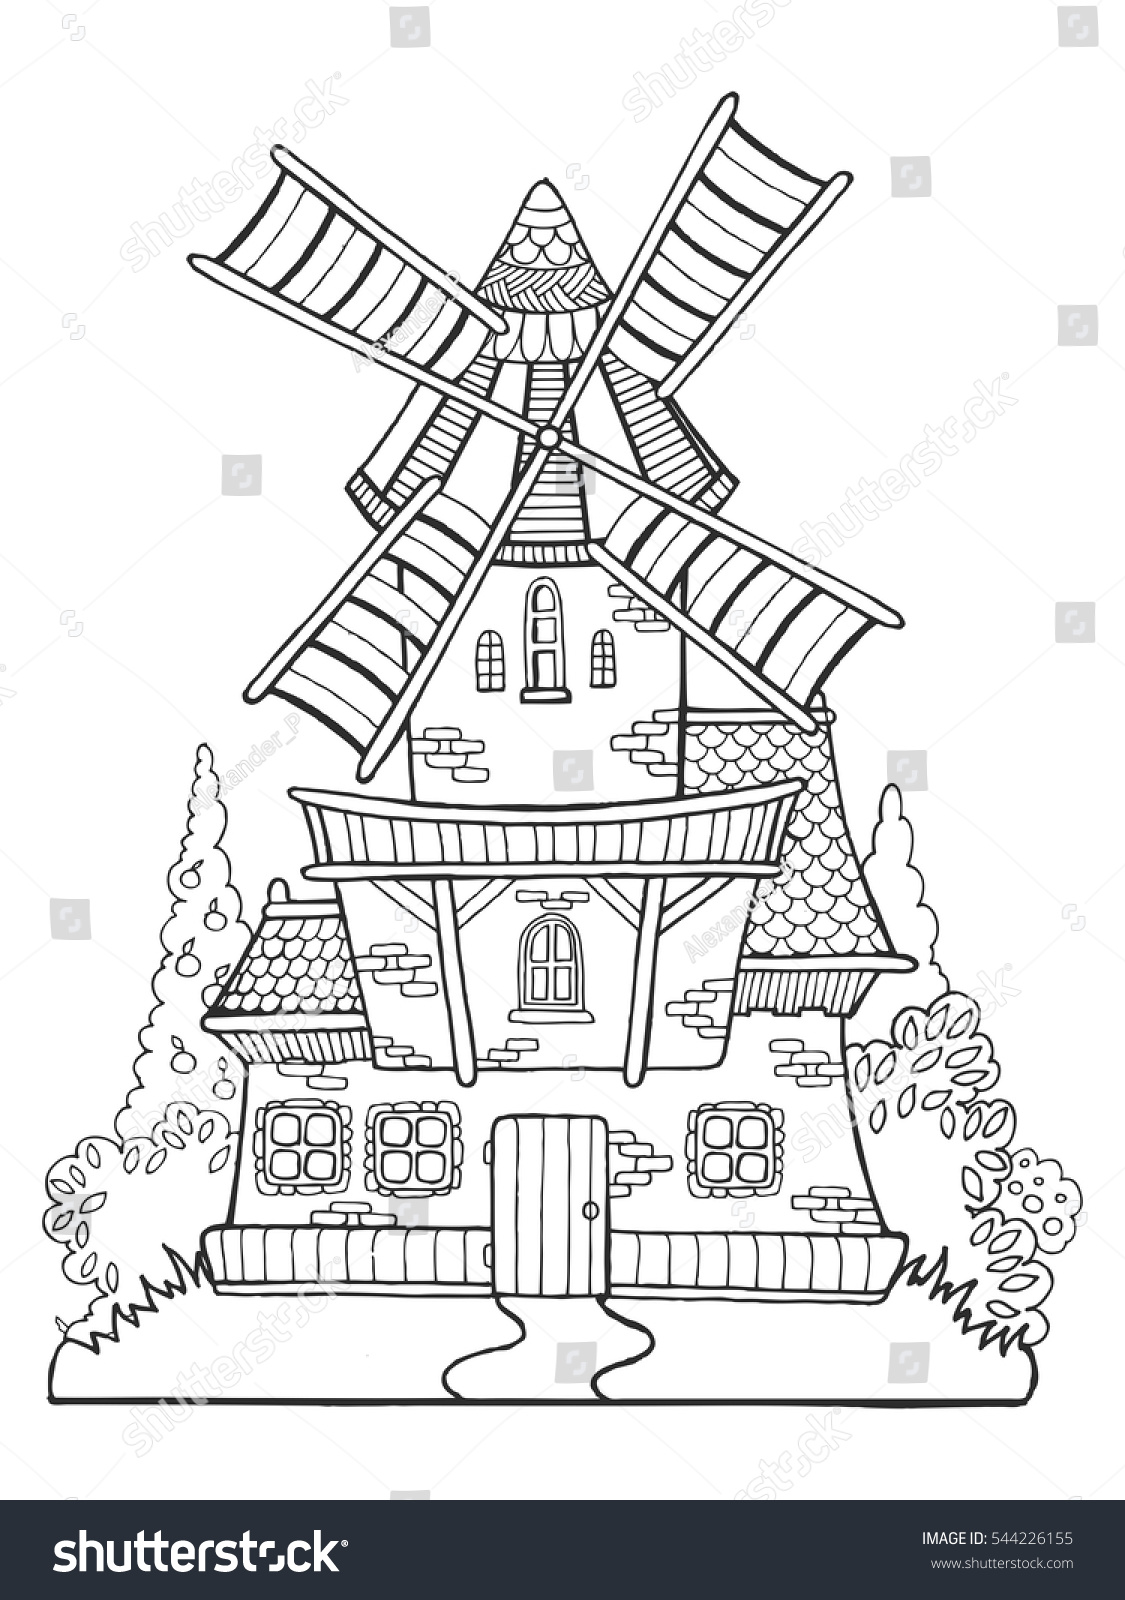 Coloring book landmark for adults - Windmill Drawing Coloring Book For Adults Vector Illustration Anti Stress Coloring For Adult